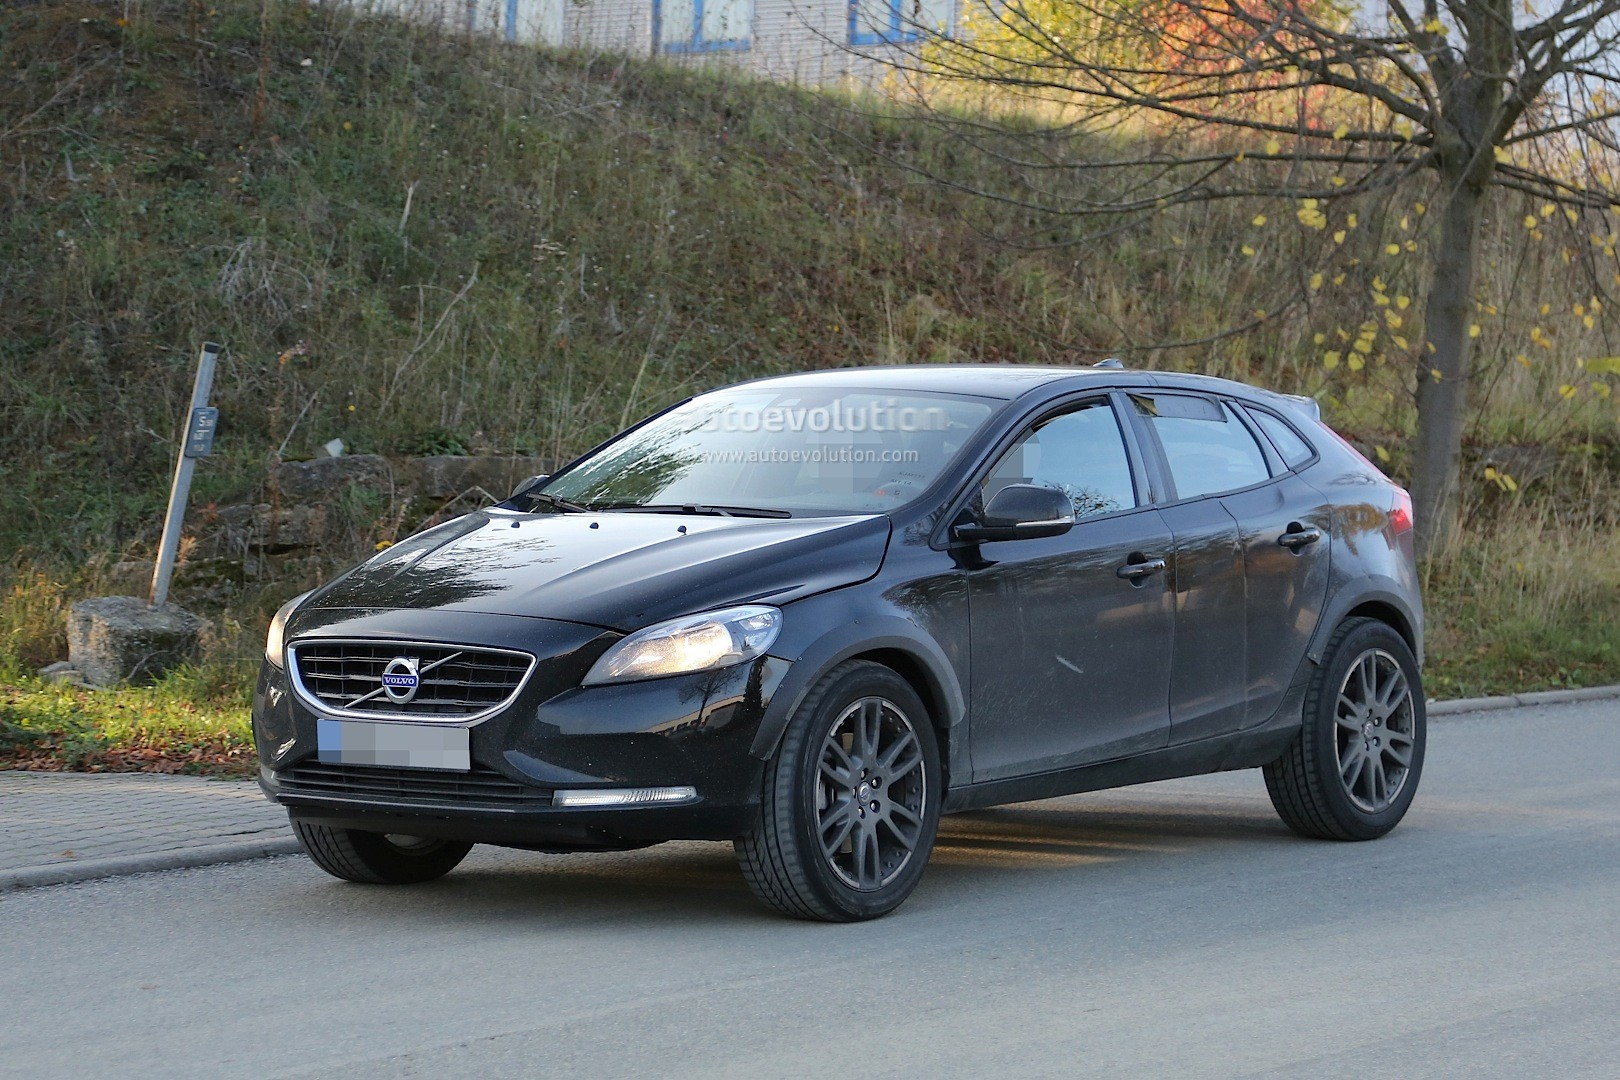 Spyshots: Volvo XC40 Coming in 2018, Will Be Built in Belgium and Compete with GLA, X1 ...